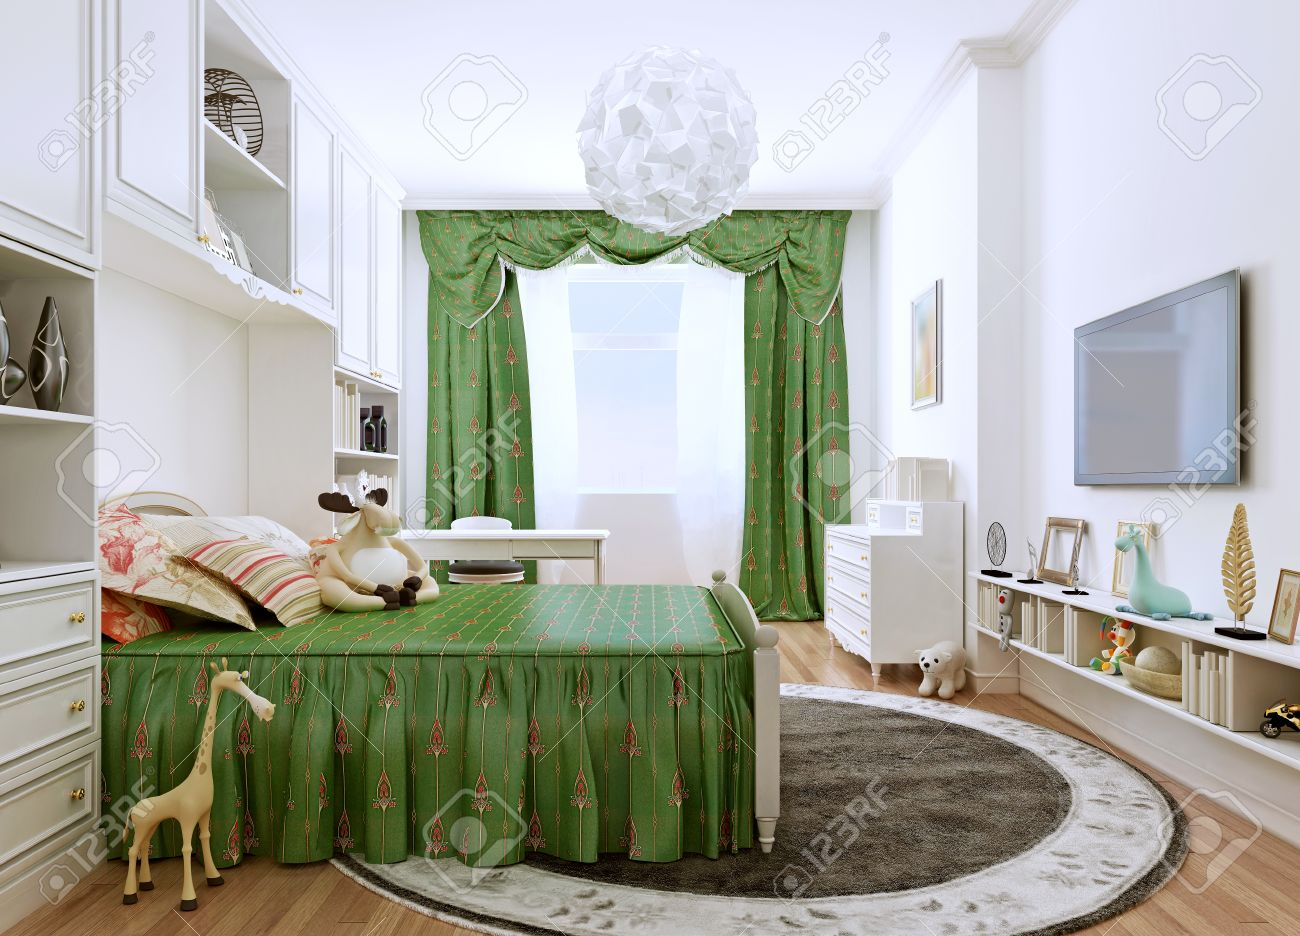 Jugendzimmer Farben Stock Photo